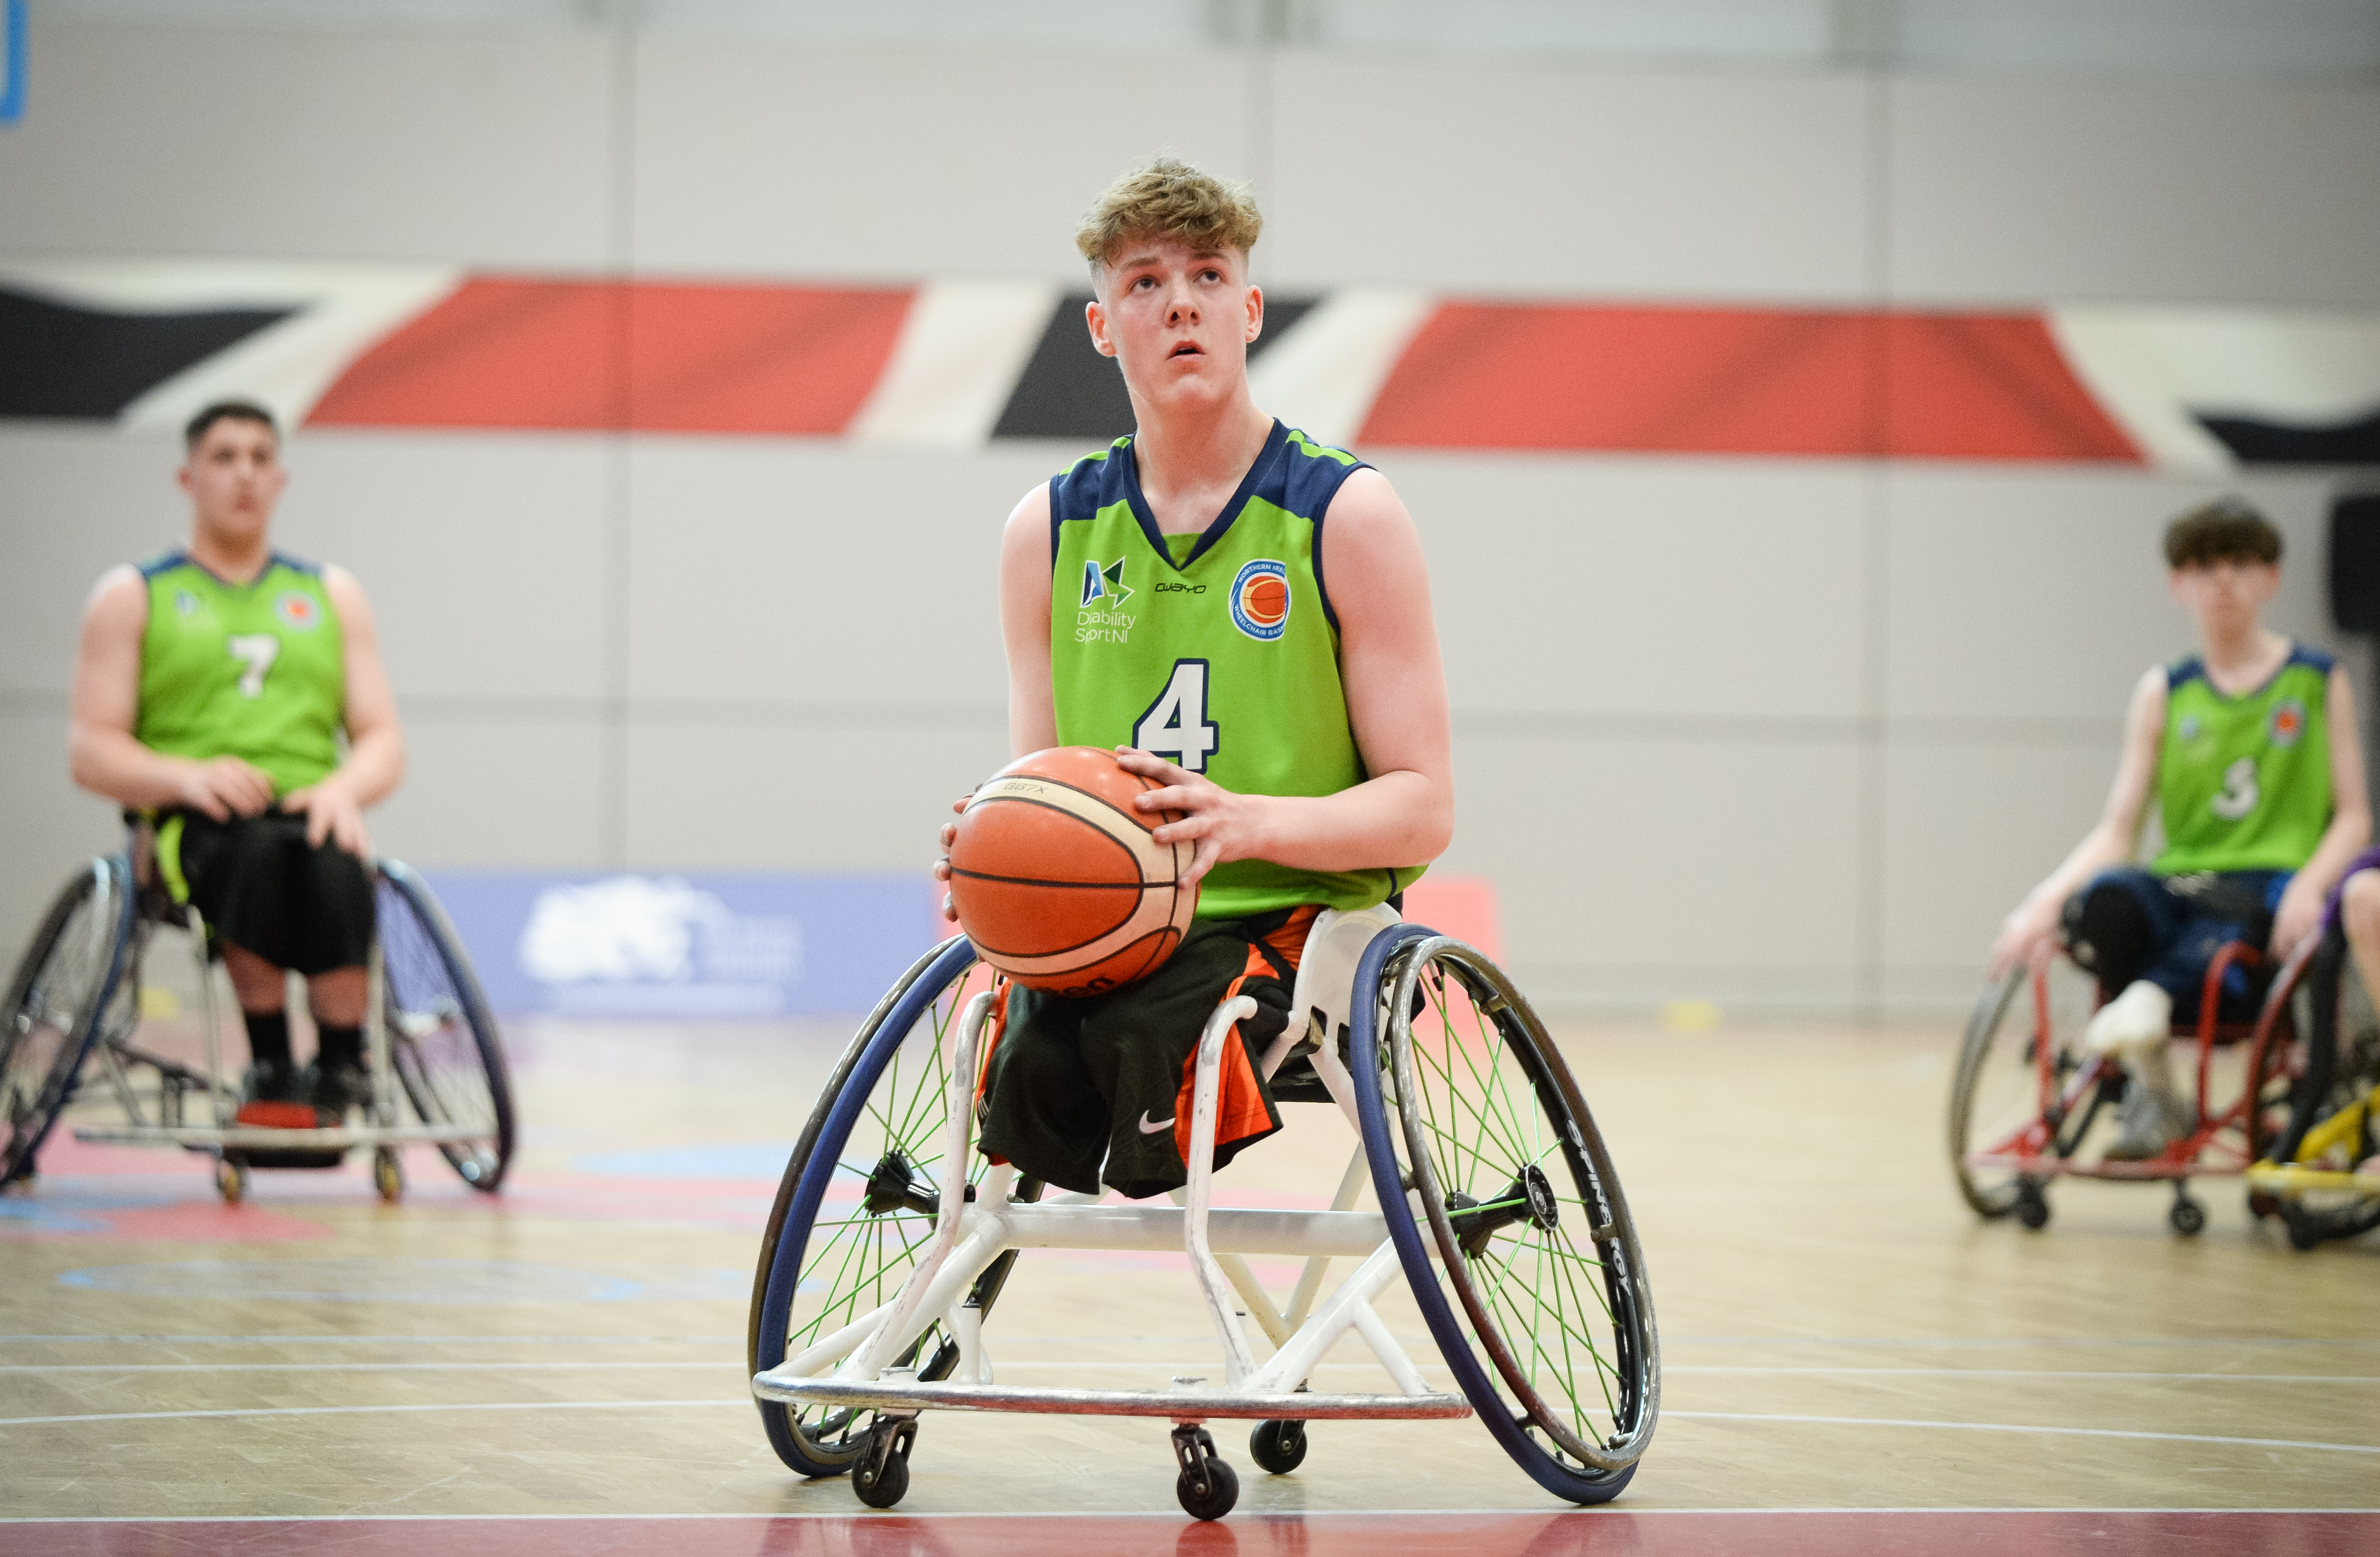 An image of Conn Nagle in his Northern Ireland Kit preparing to take a shot